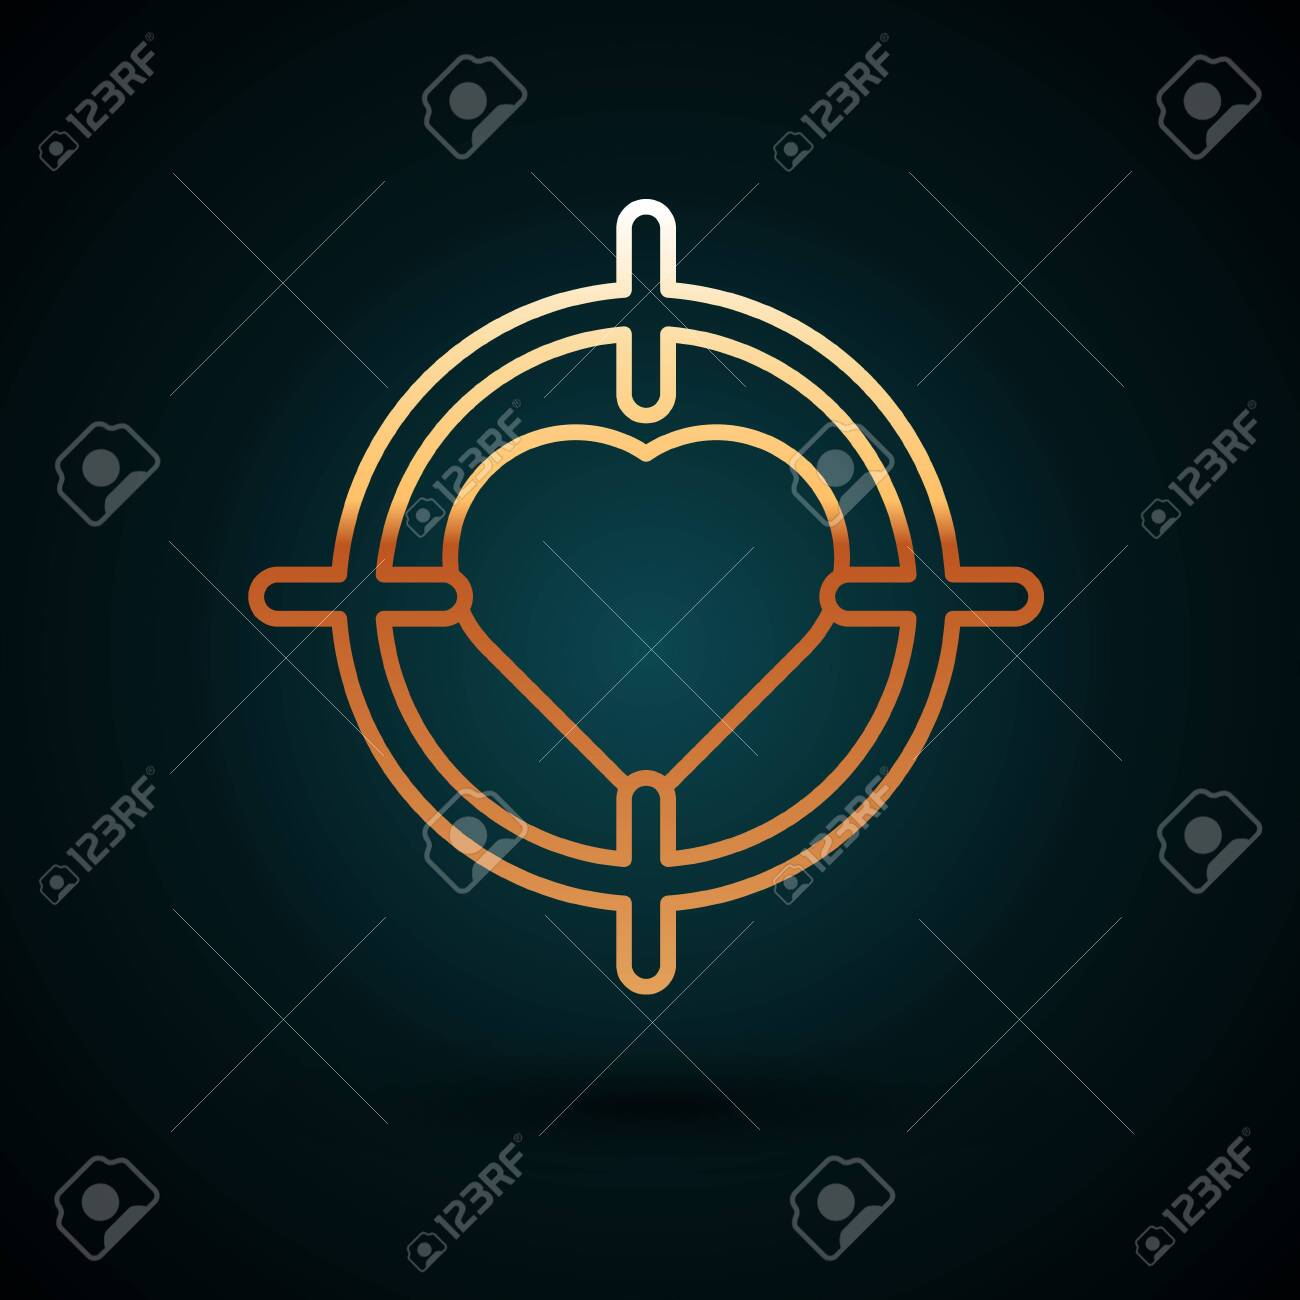 gold line heart in the center of darts target aim icon isolated royalty free cliparts vectors and stock illustration image 150093181 123rf com